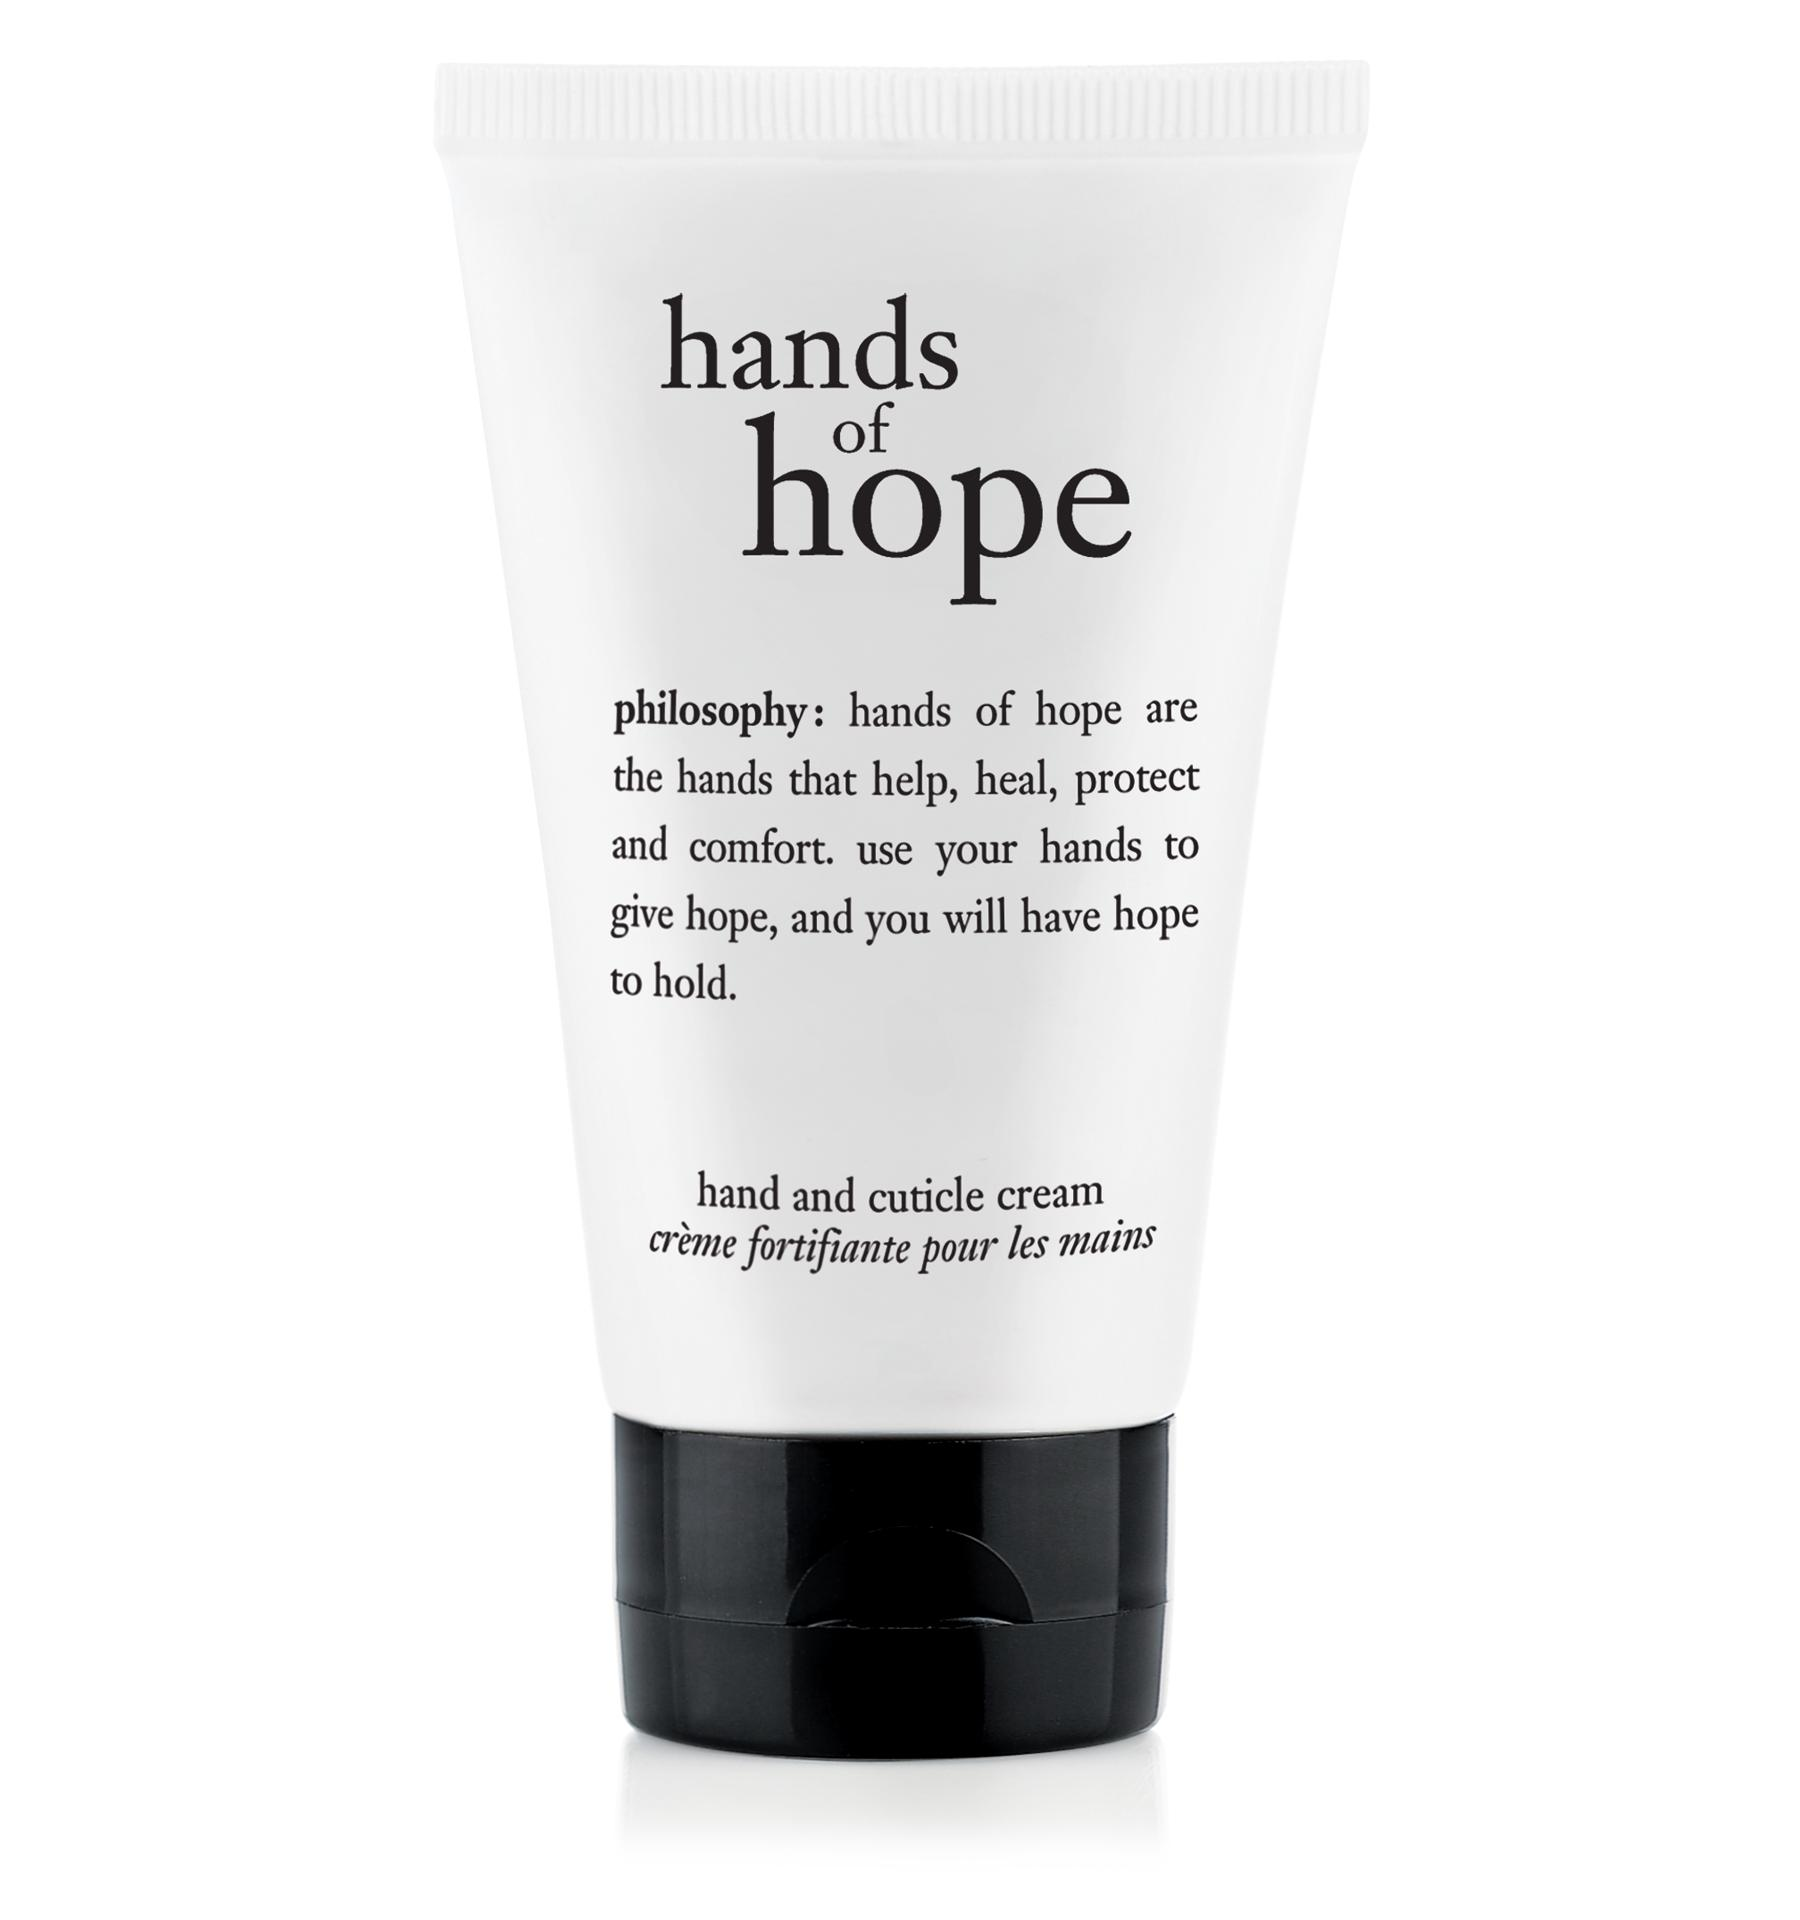 philosophy, hands of hope